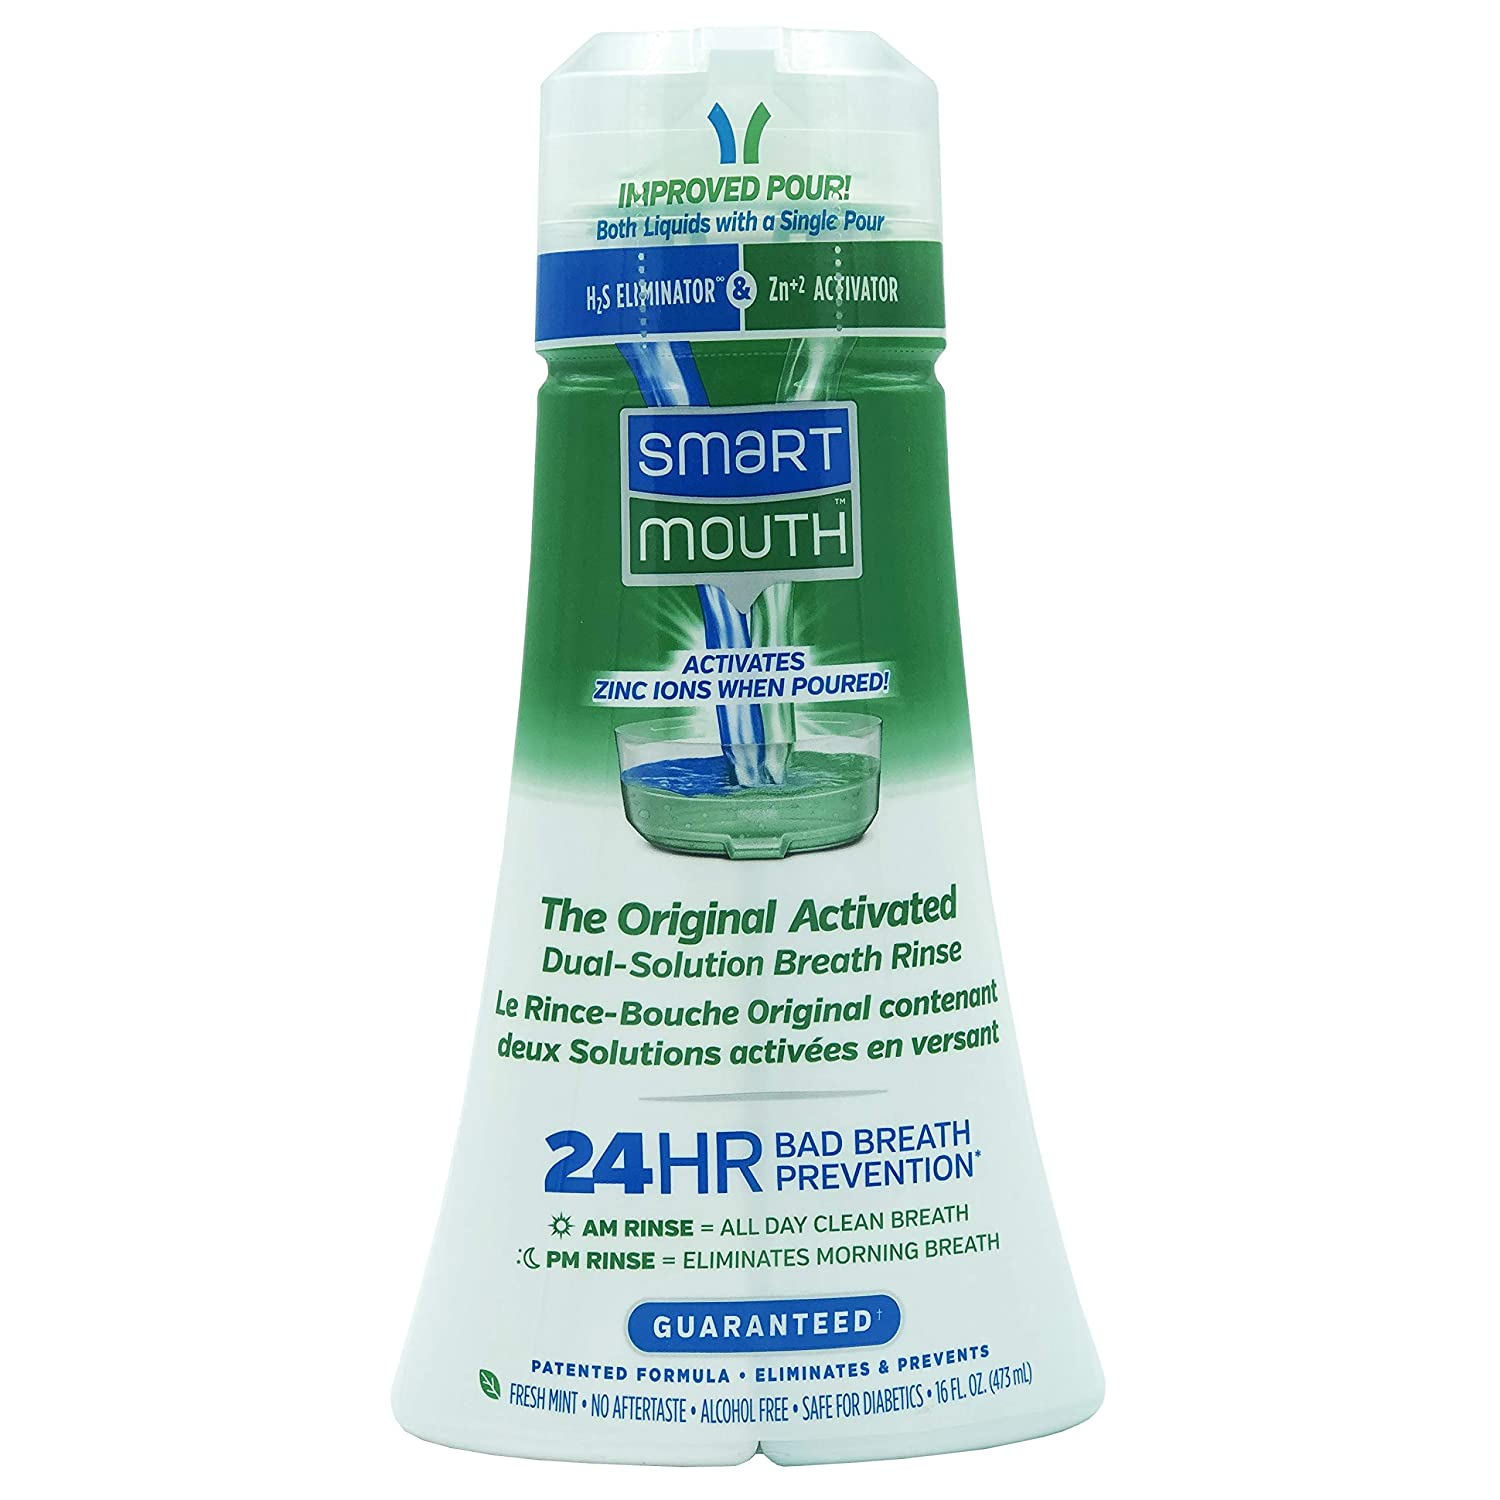 SmartMouth Original Activated Mouthwash for 24 Hour Bad Breath Prevention, Fresh Mint, 16 fl oz, 2 Pack: Health & Personal Care